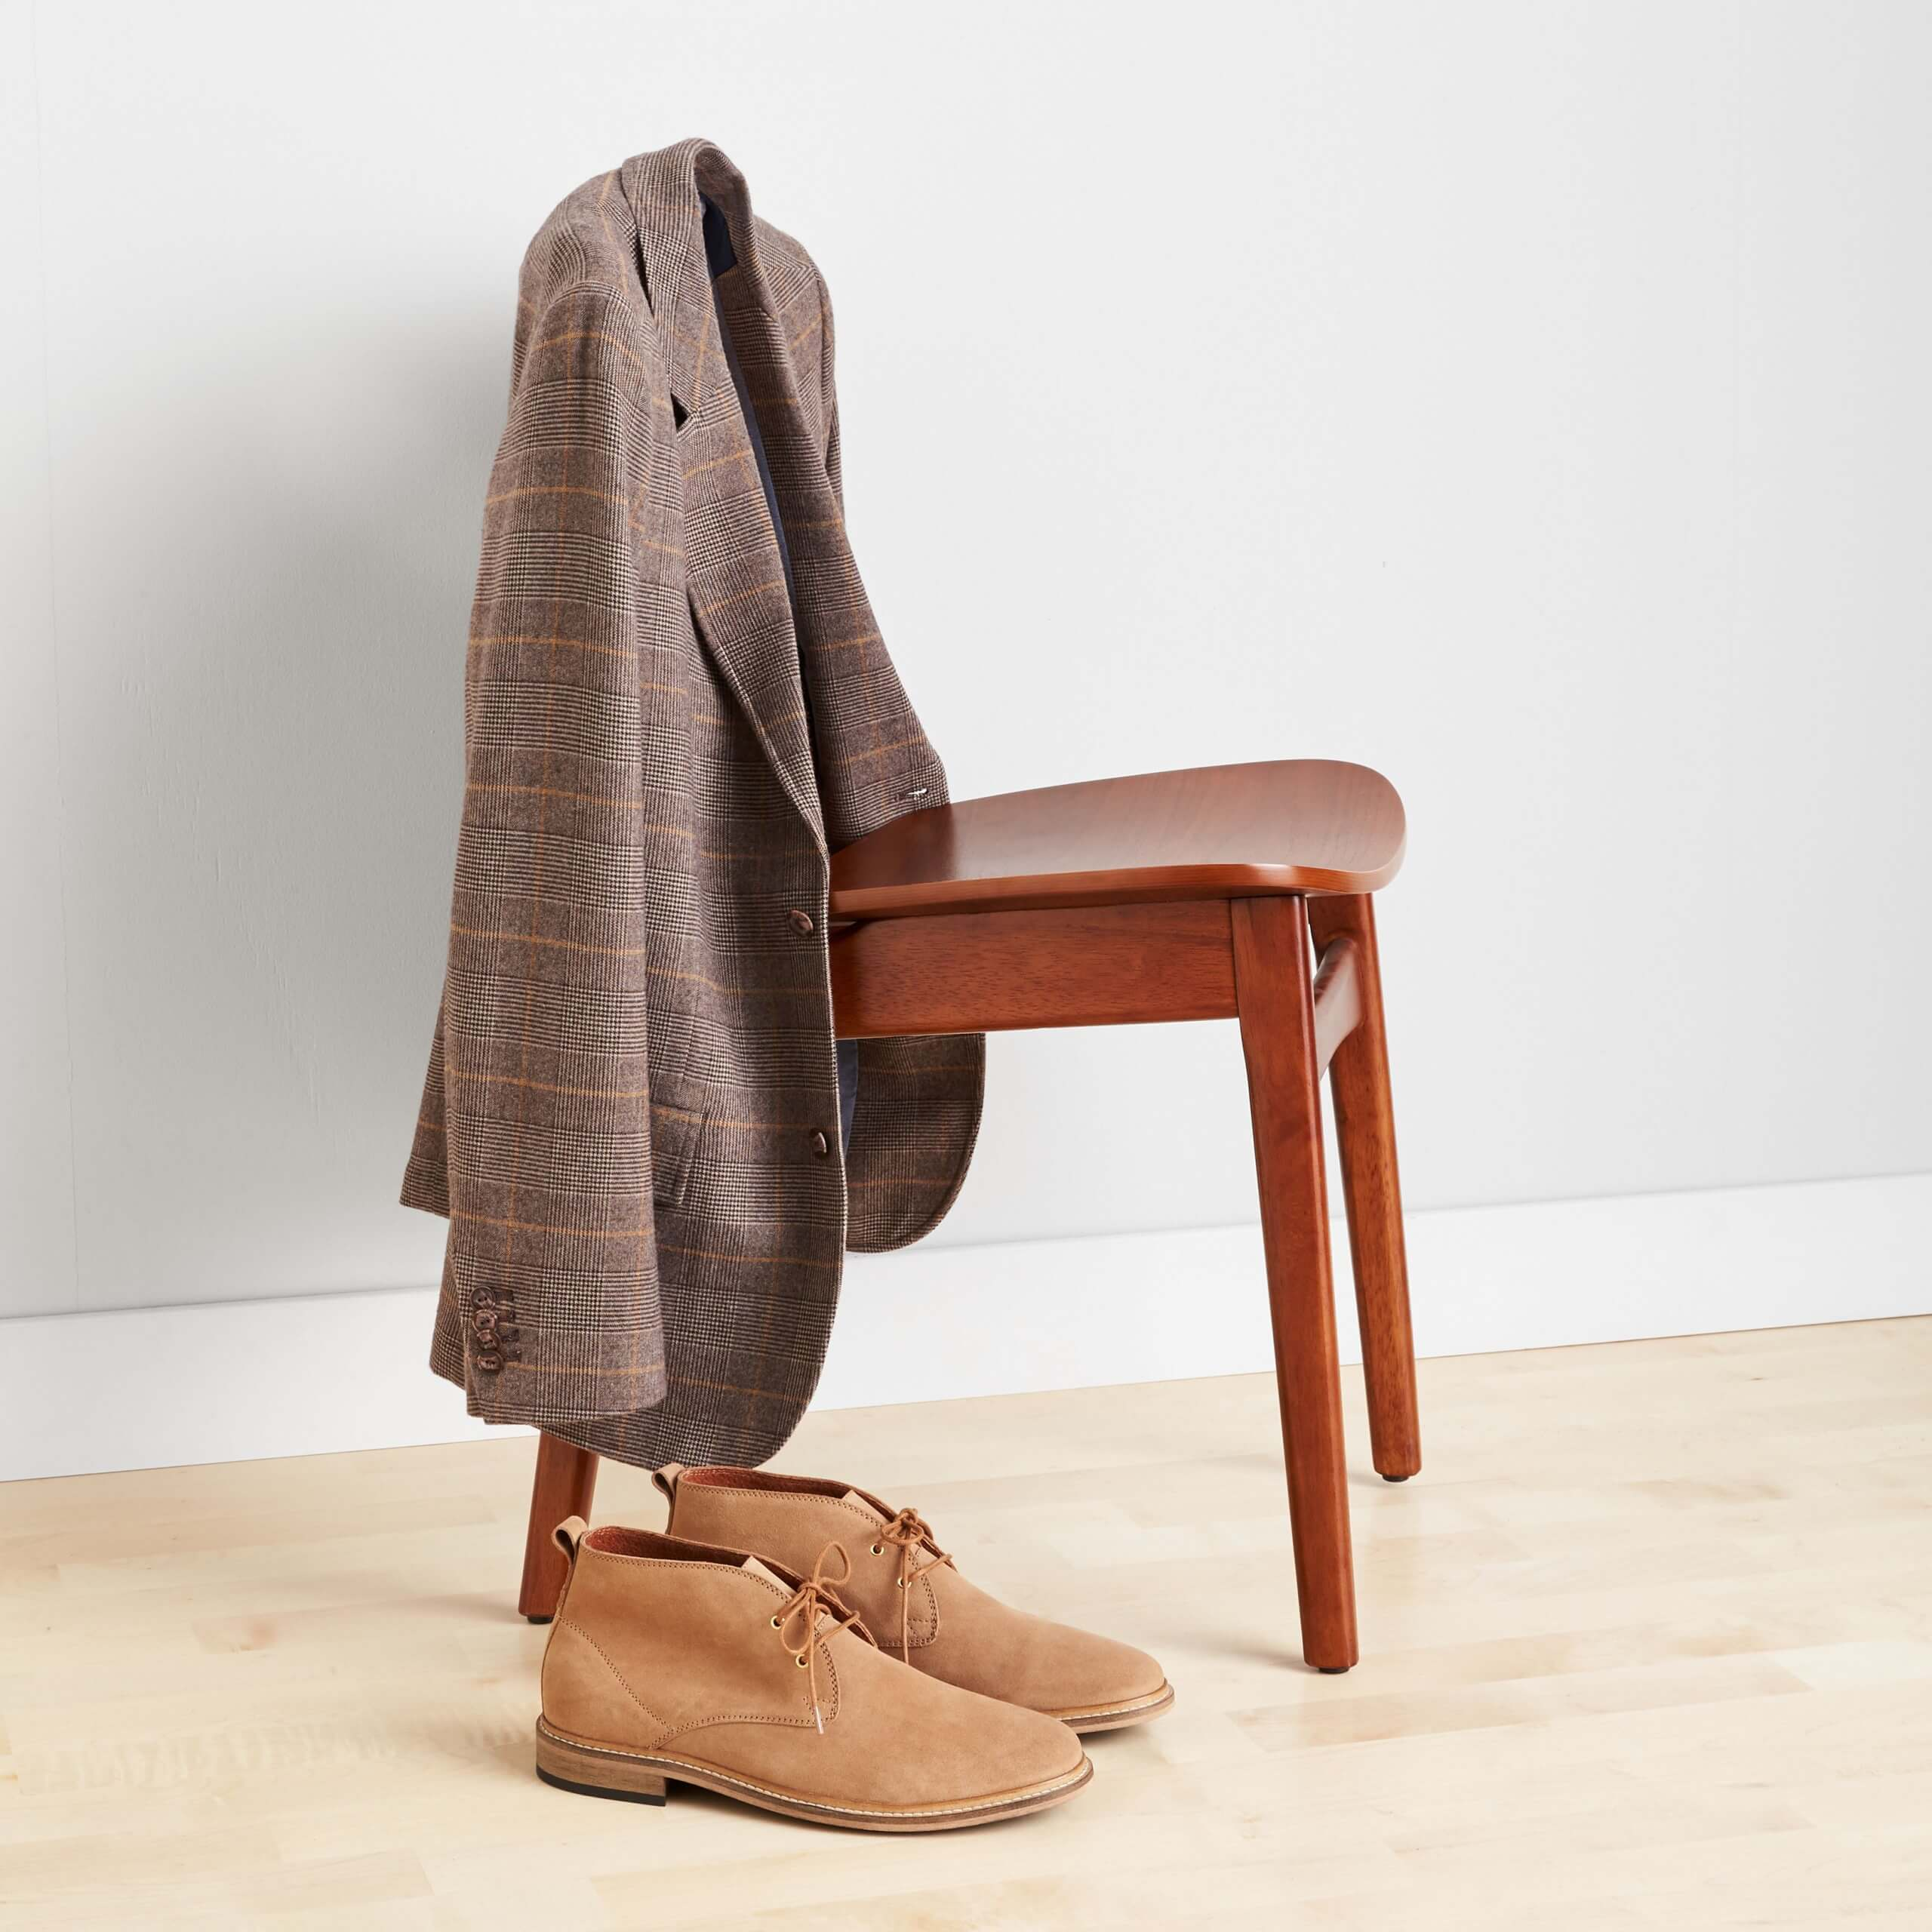 Stitch Fix Men's brown plaid jacket hanging over a wooden chair, next to tan chukkas on the floor.